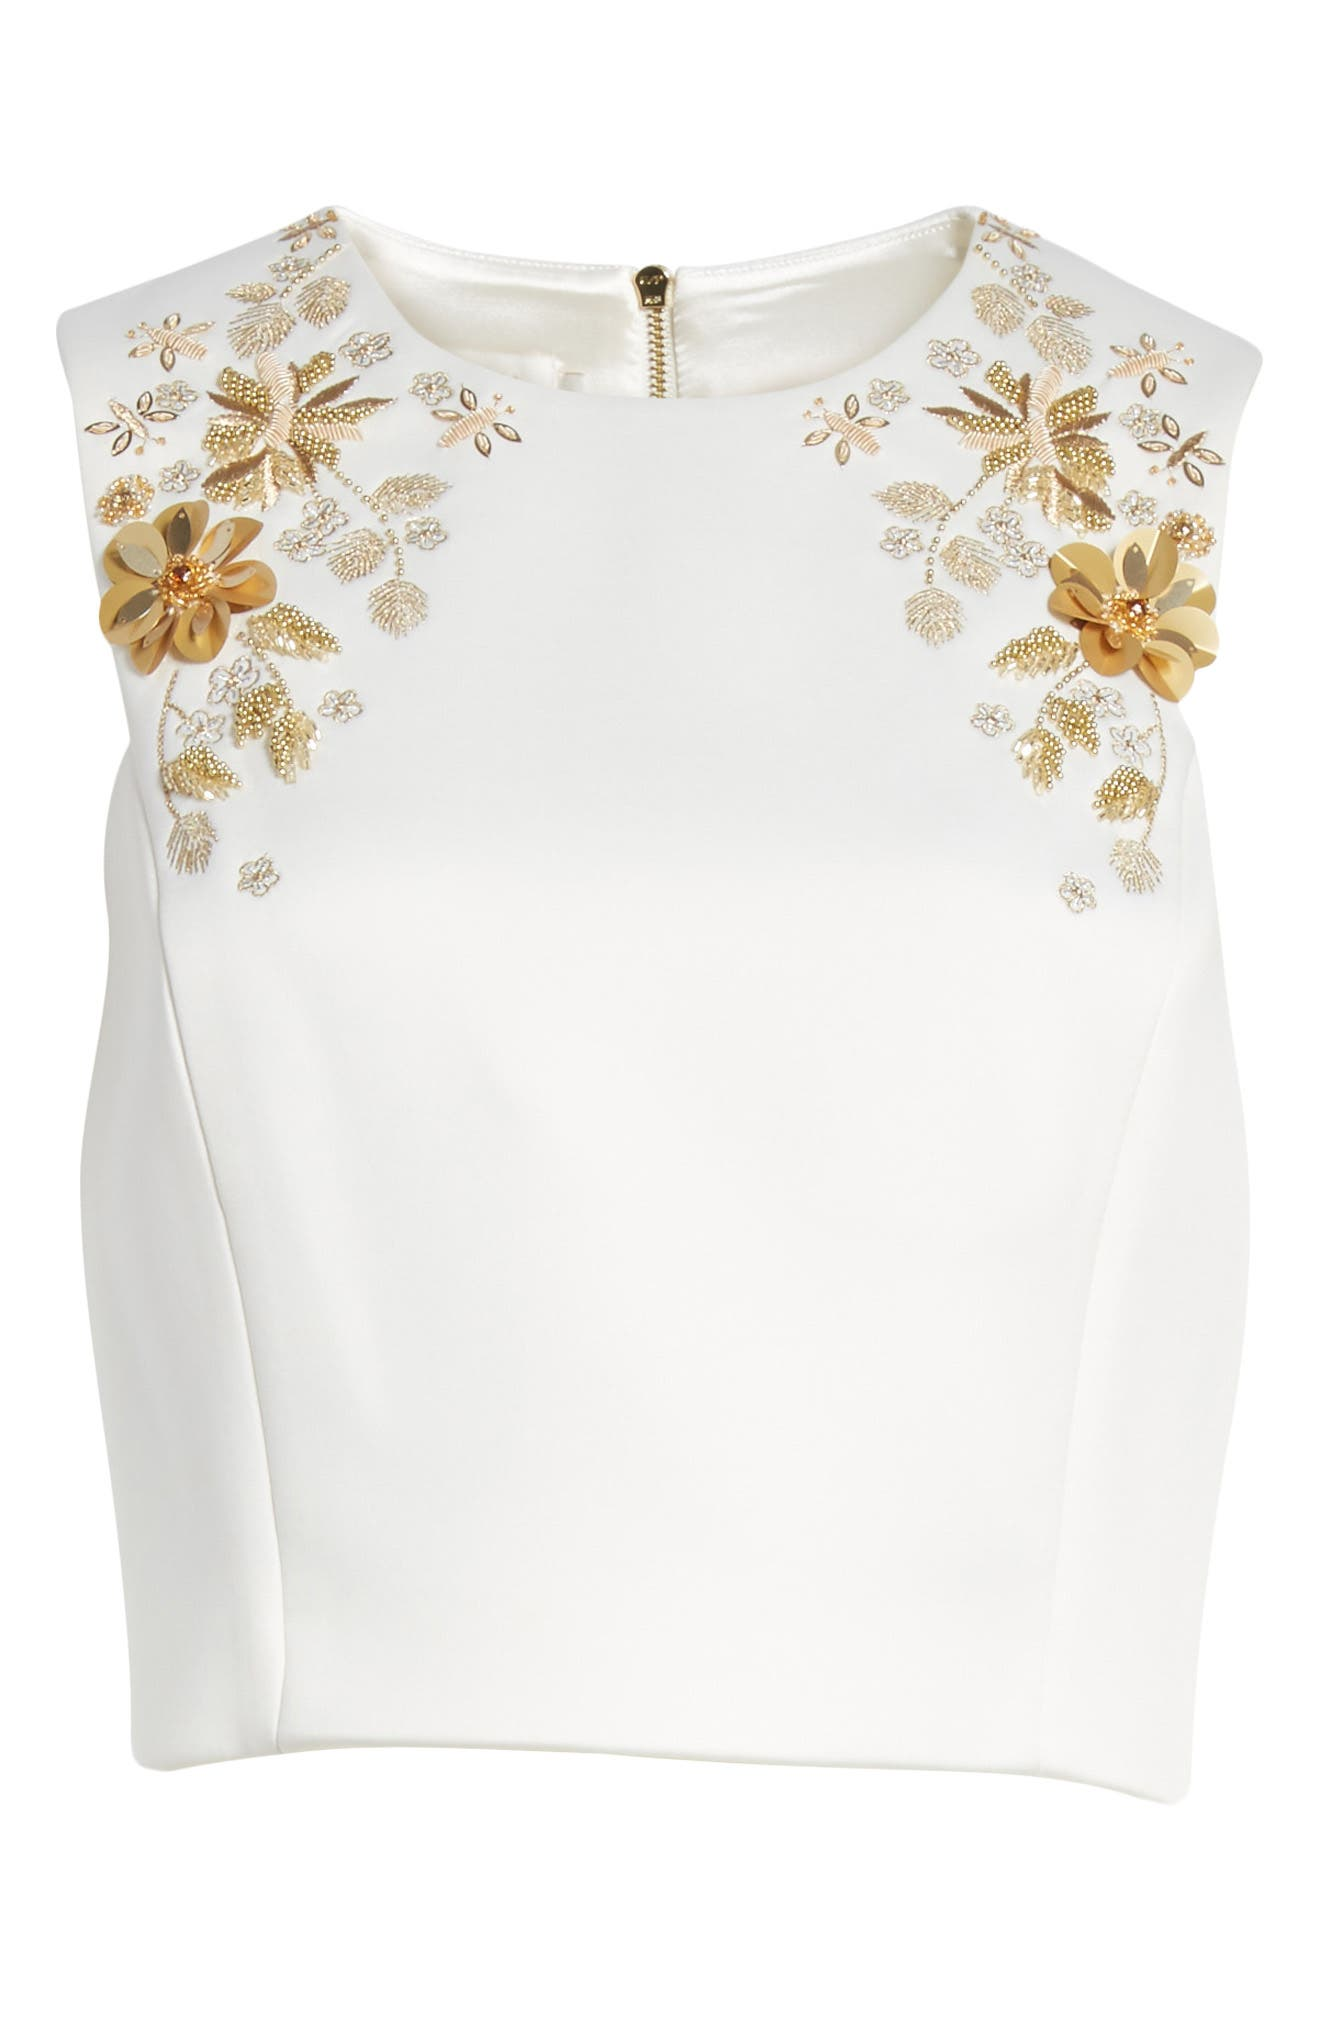 Embellished Bee Sleeveless Crop Top,                             Alternate thumbnail 6, color,                             115